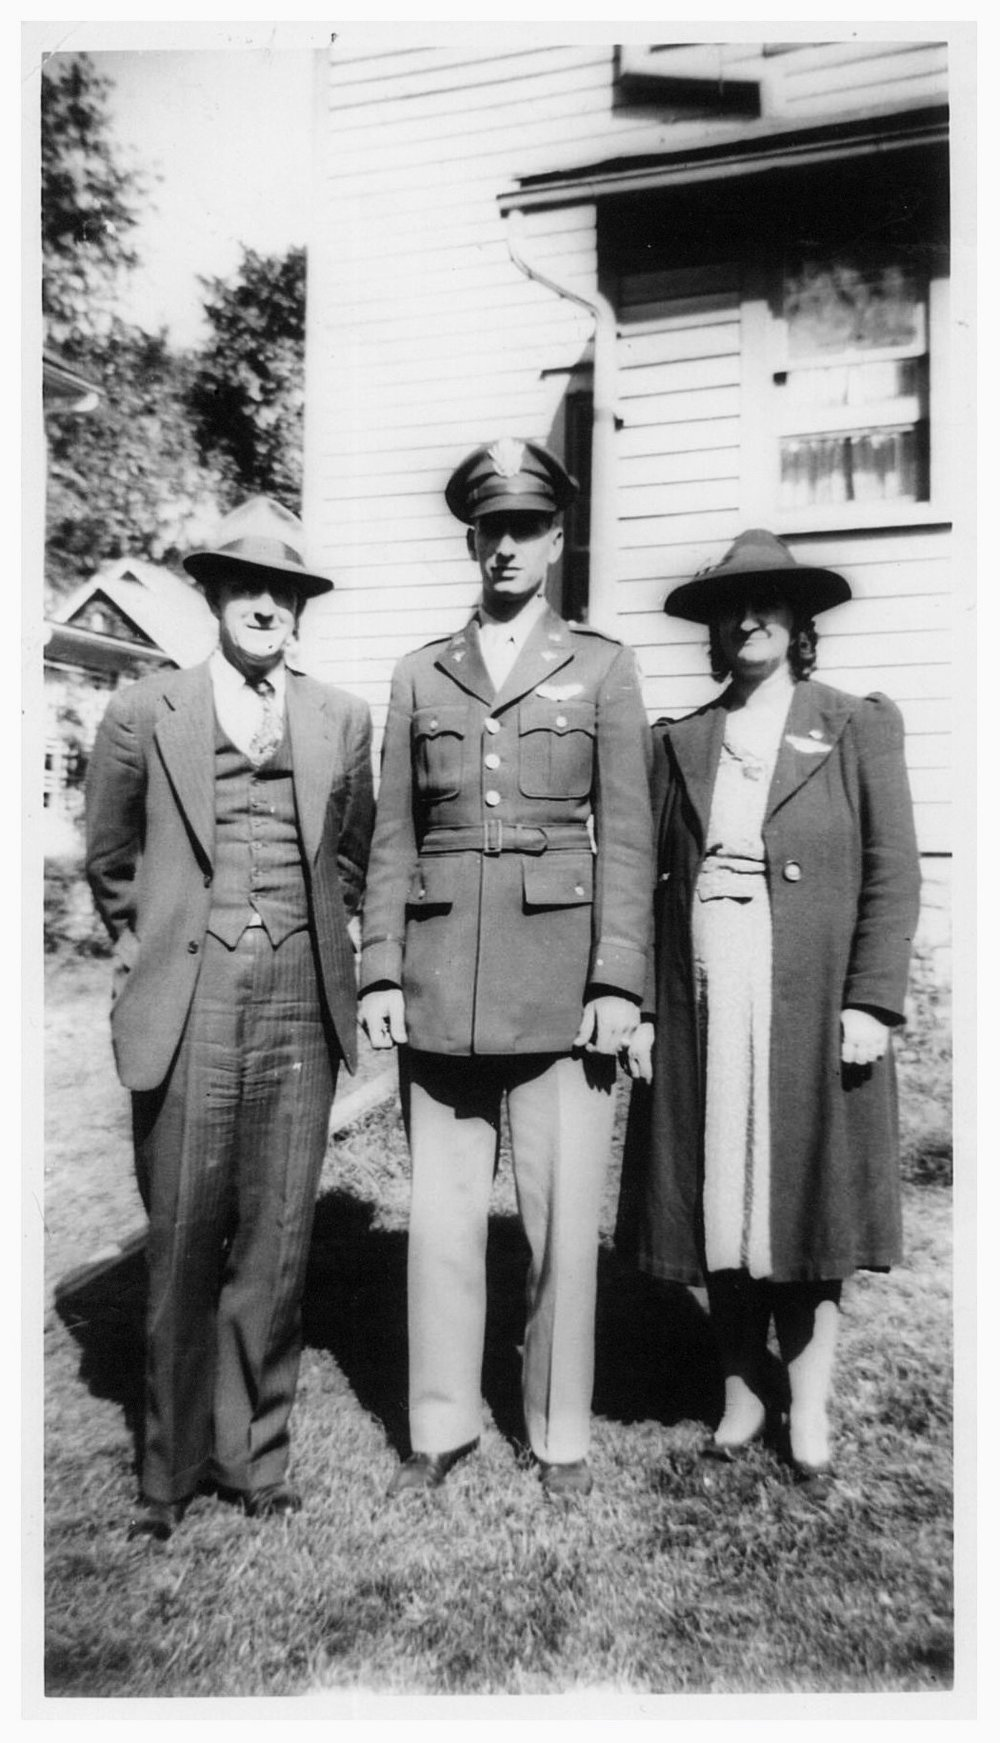 Members of the family of 2nd Lt. James Ryan: Father Thomas and mother Marion, in front of their home in September, 1944.  All three of the sons served in the military. Mother, Marion, after learning that James was missing in action, repeatedly called radio stations asking for news information on his whereabouts.